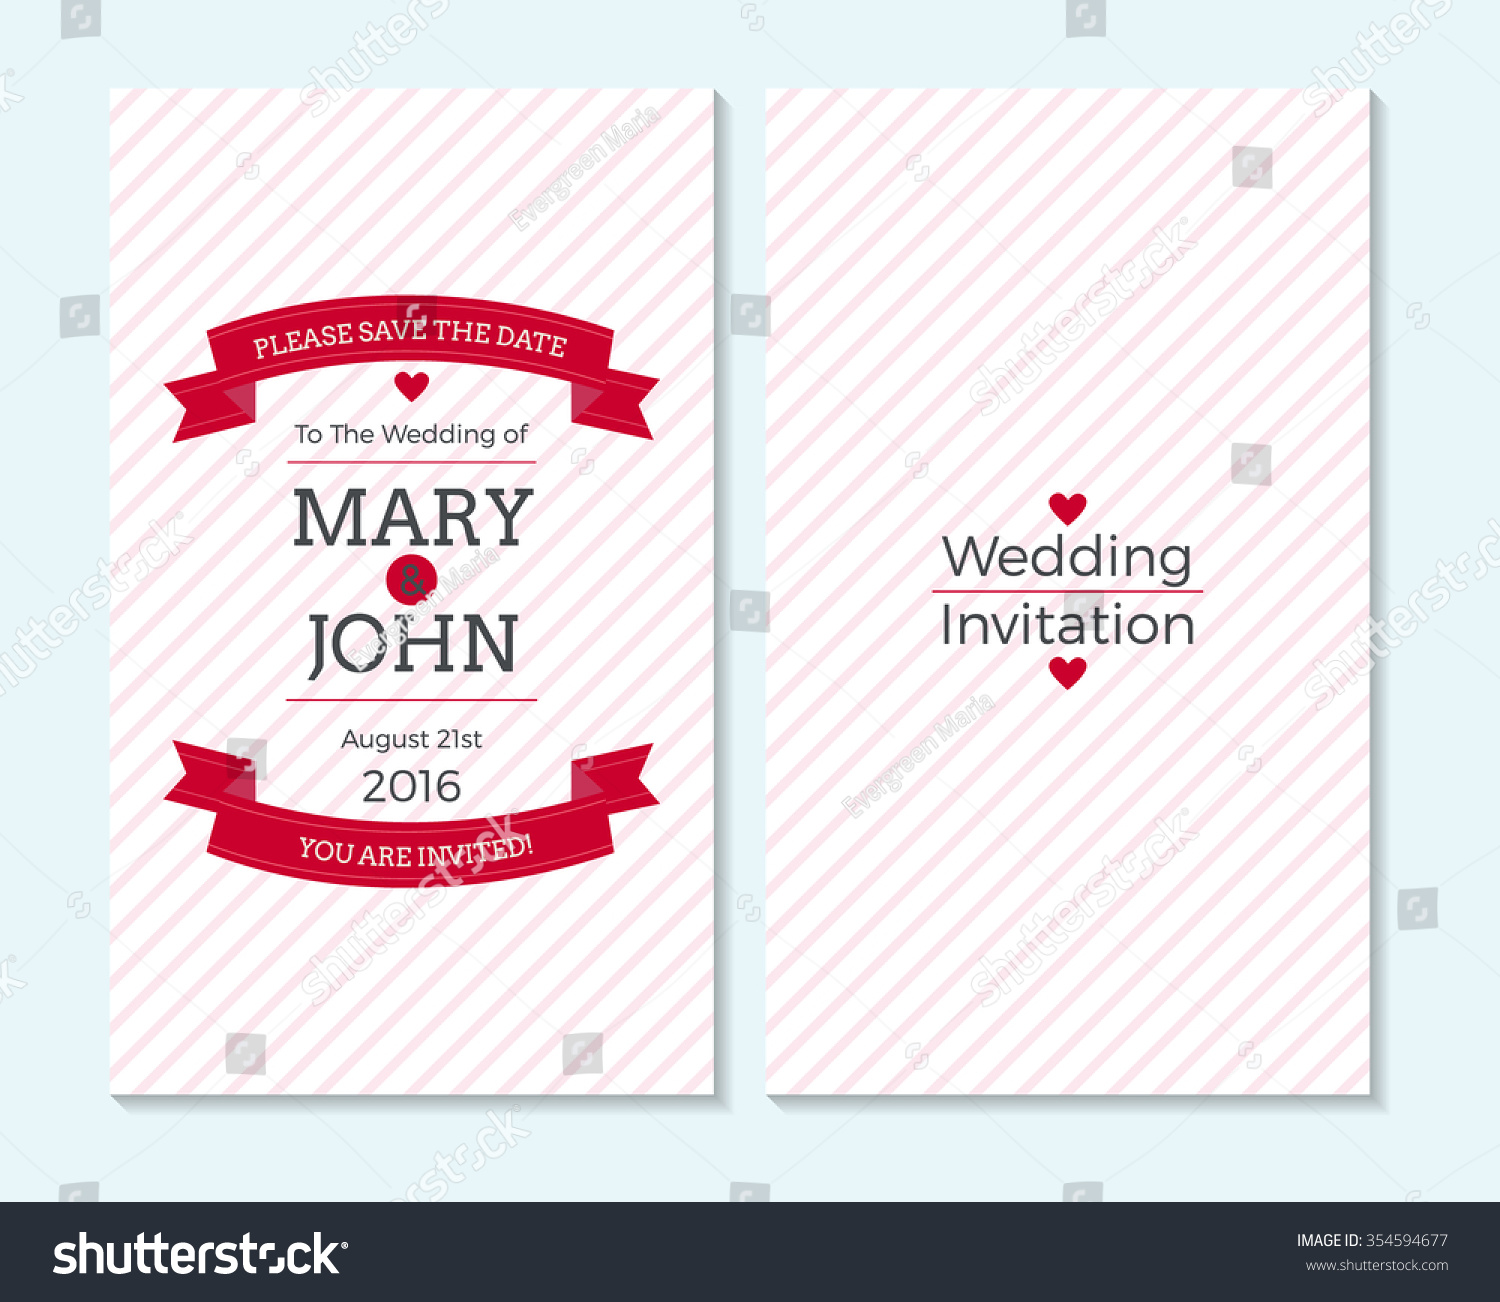 wedding invitation thank you card save stock vector 354594677 shutterstock. Black Bedroom Furniture Sets. Home Design Ideas